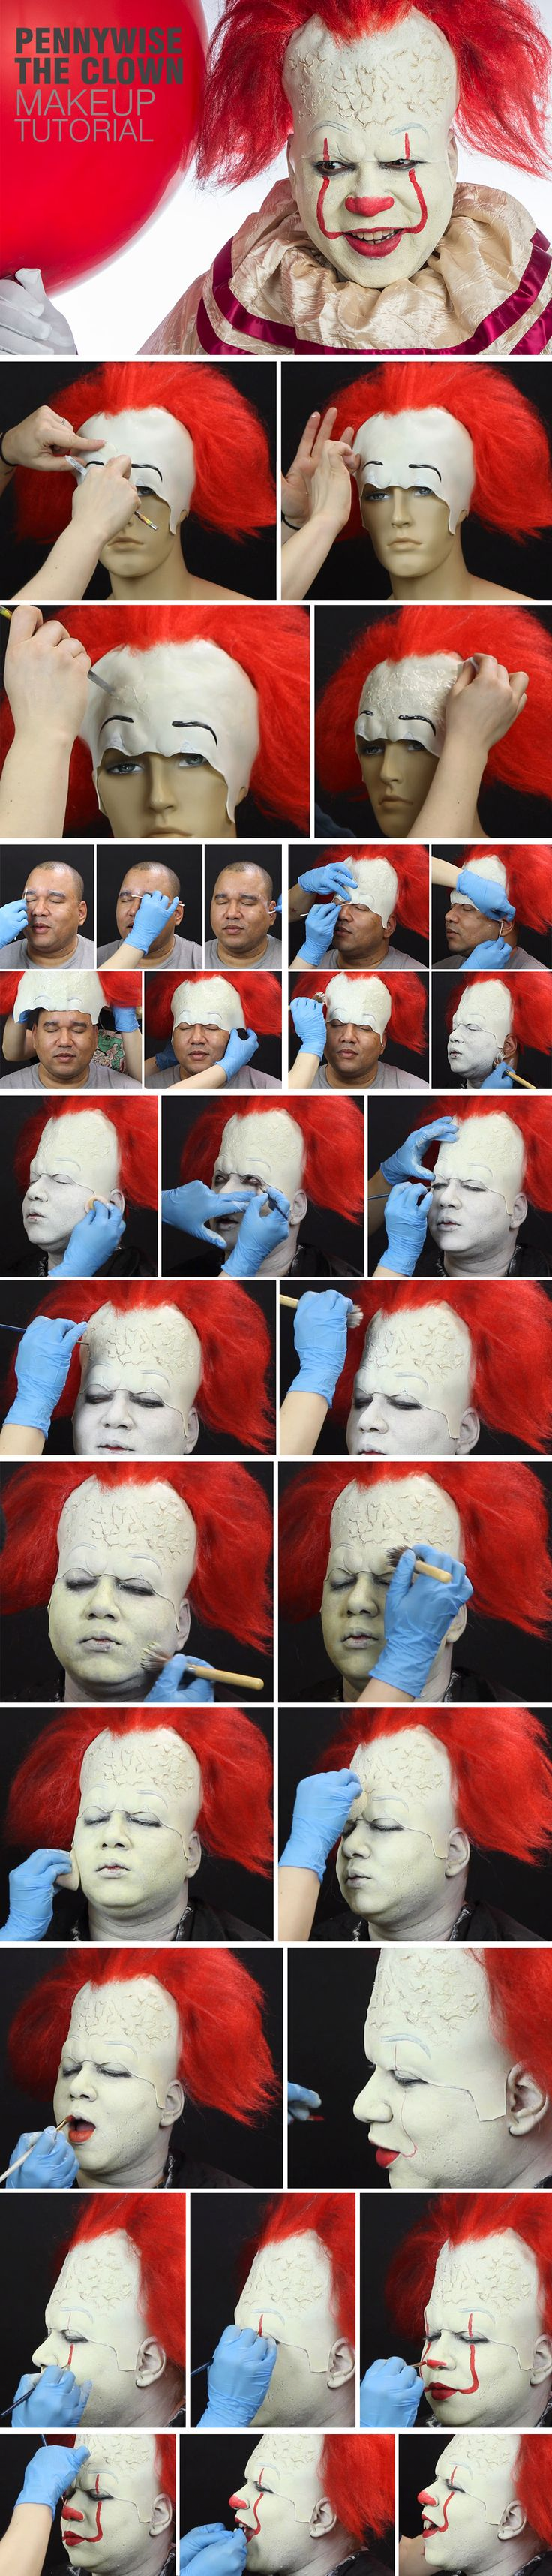 Follow this TERRIFYING  step-by-step tutorial for Pennywise the Clown makeup from Stephen King's IT, in theaters September 8.